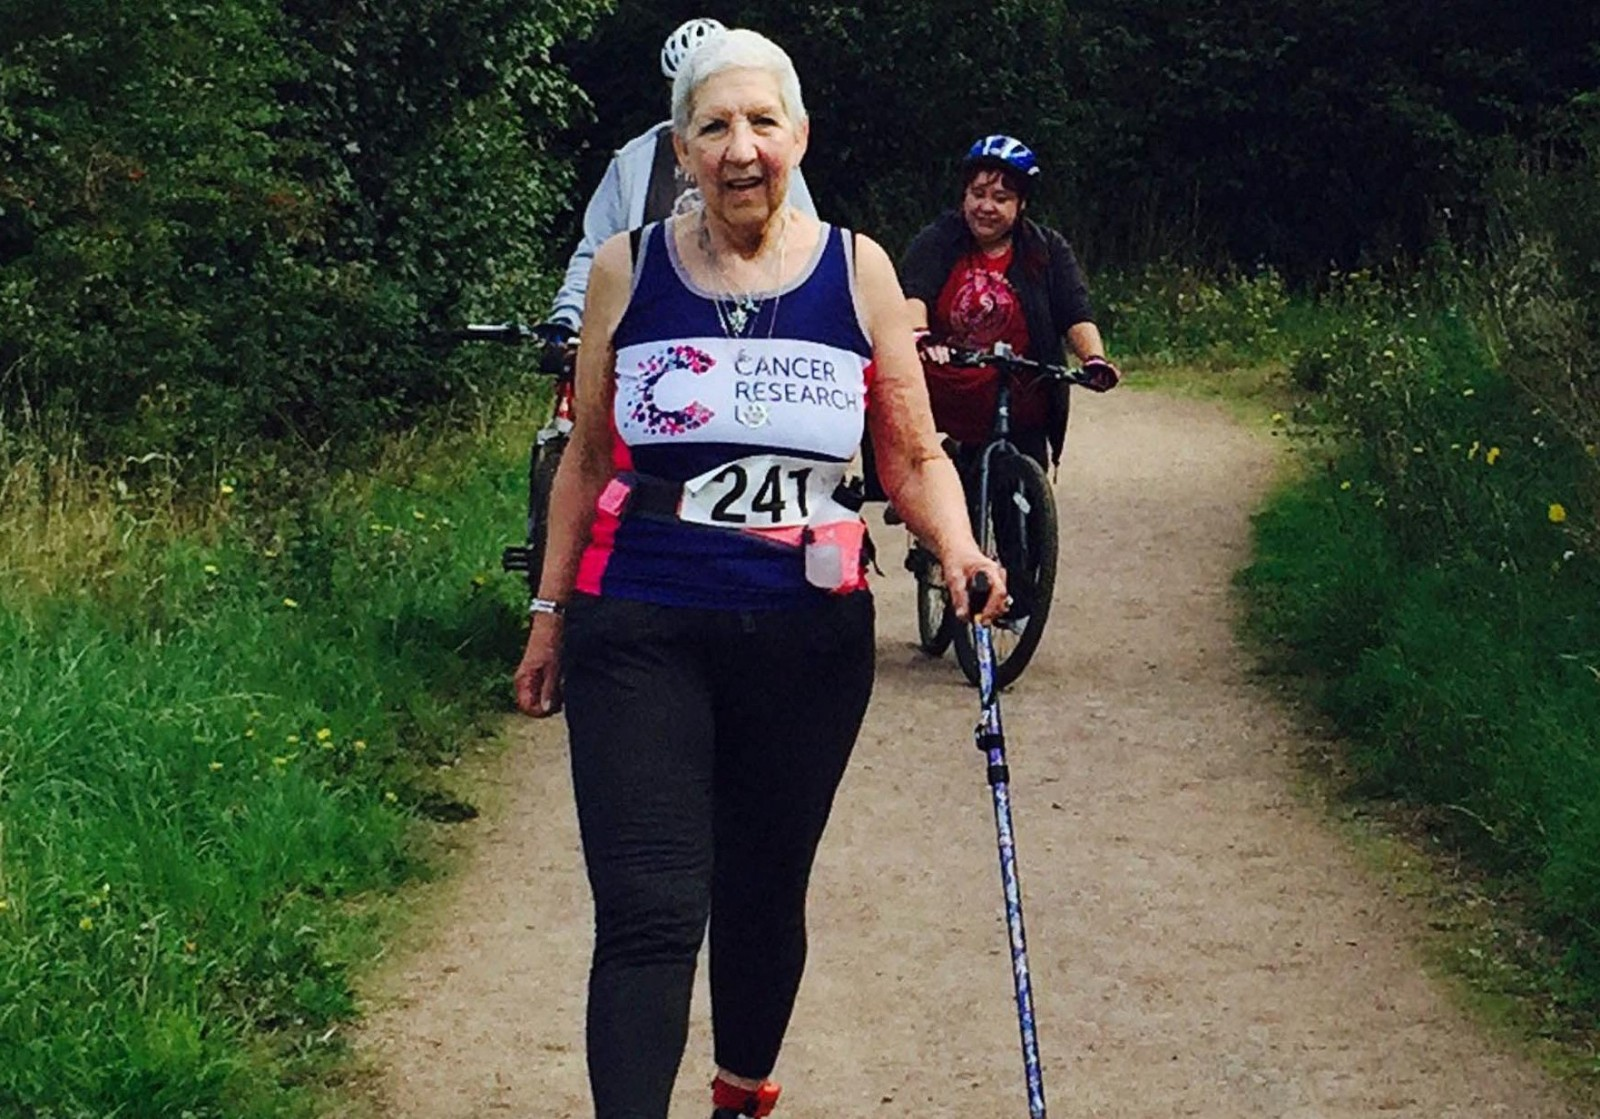 Gran diagnosed with FIVE types of cancer in TWO years defies odds to complete 10K walk